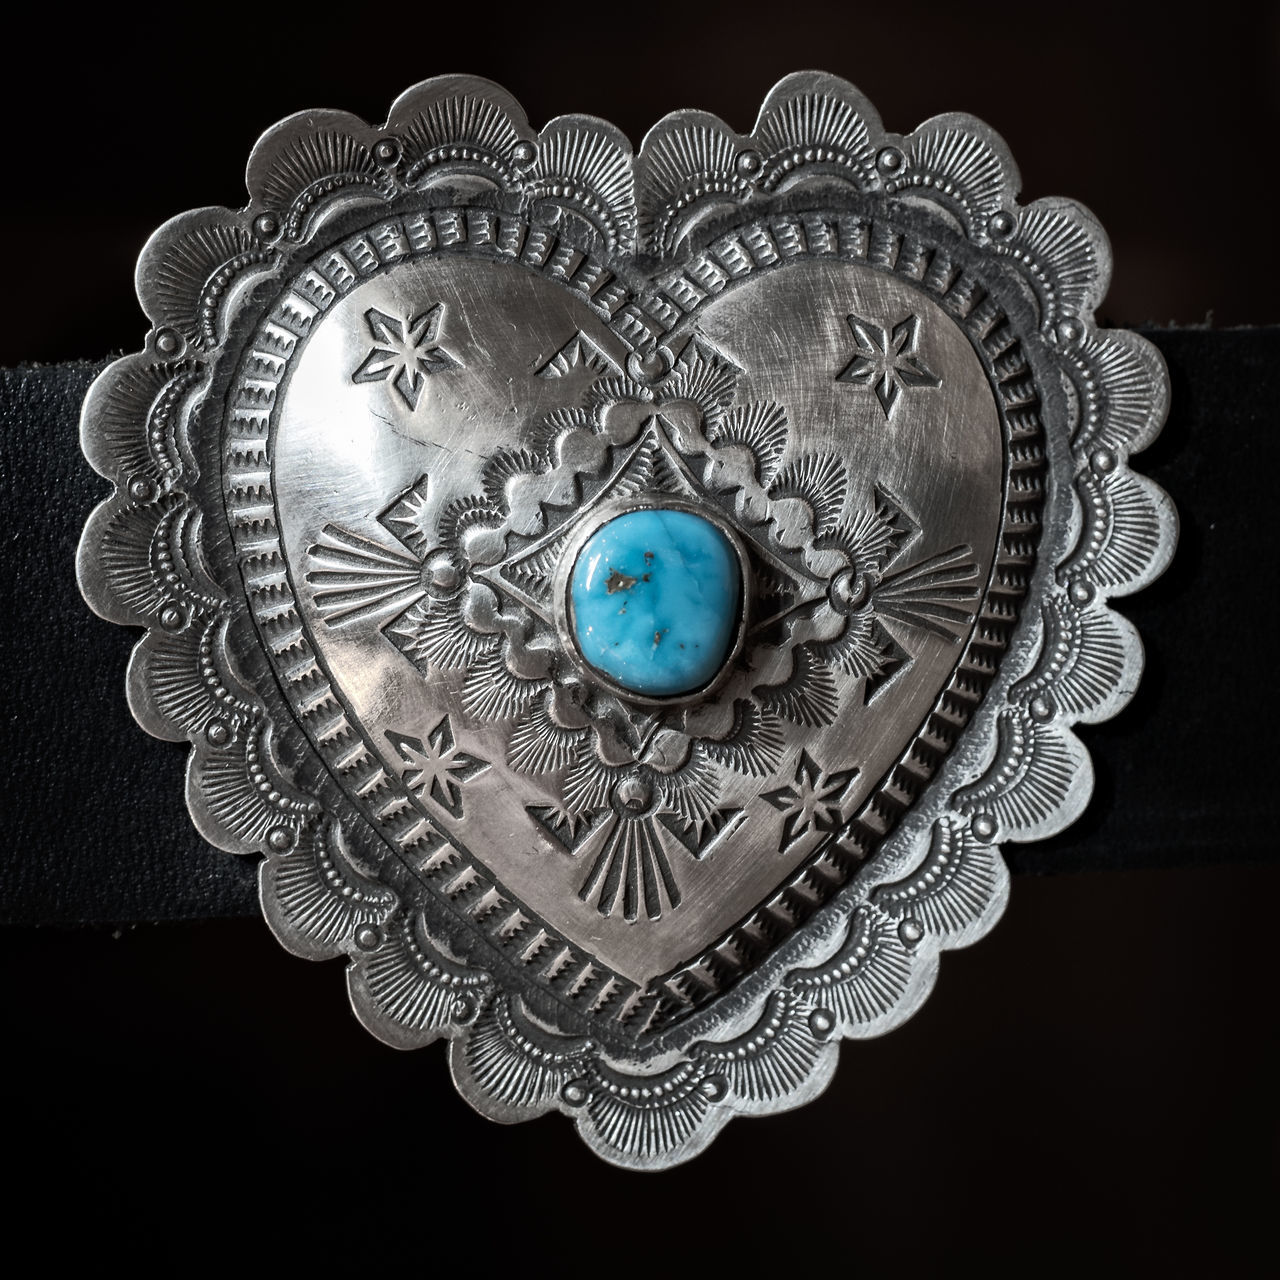 Silver & Turquoise NM Heart Design Buckle Achievement Black Background Gear New Mexico, USA Planet Earth Shiny Silver & Turquo Silver - Metal Silver Colored